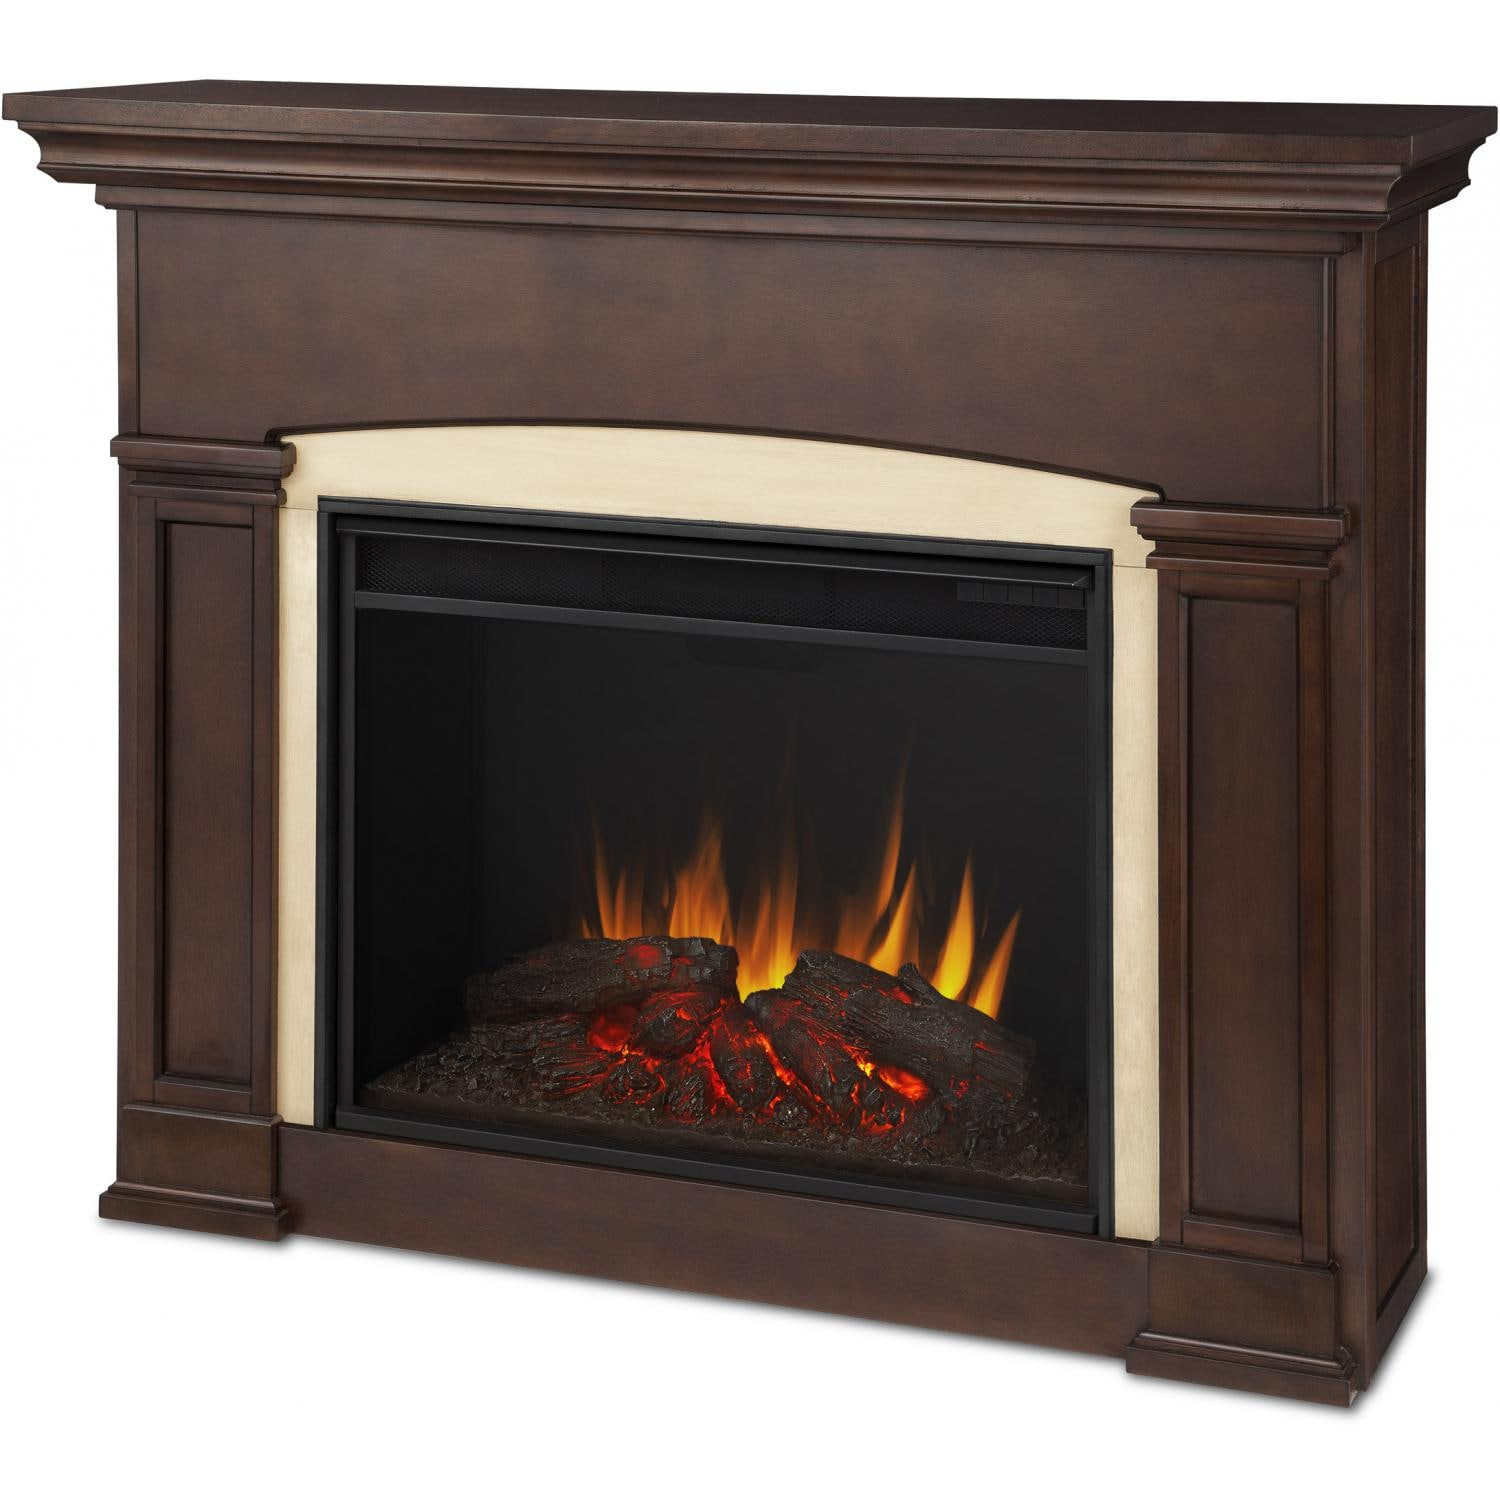 Real flame holbrook grand 58 inch electric fireplace with for Dark fireplace mantel